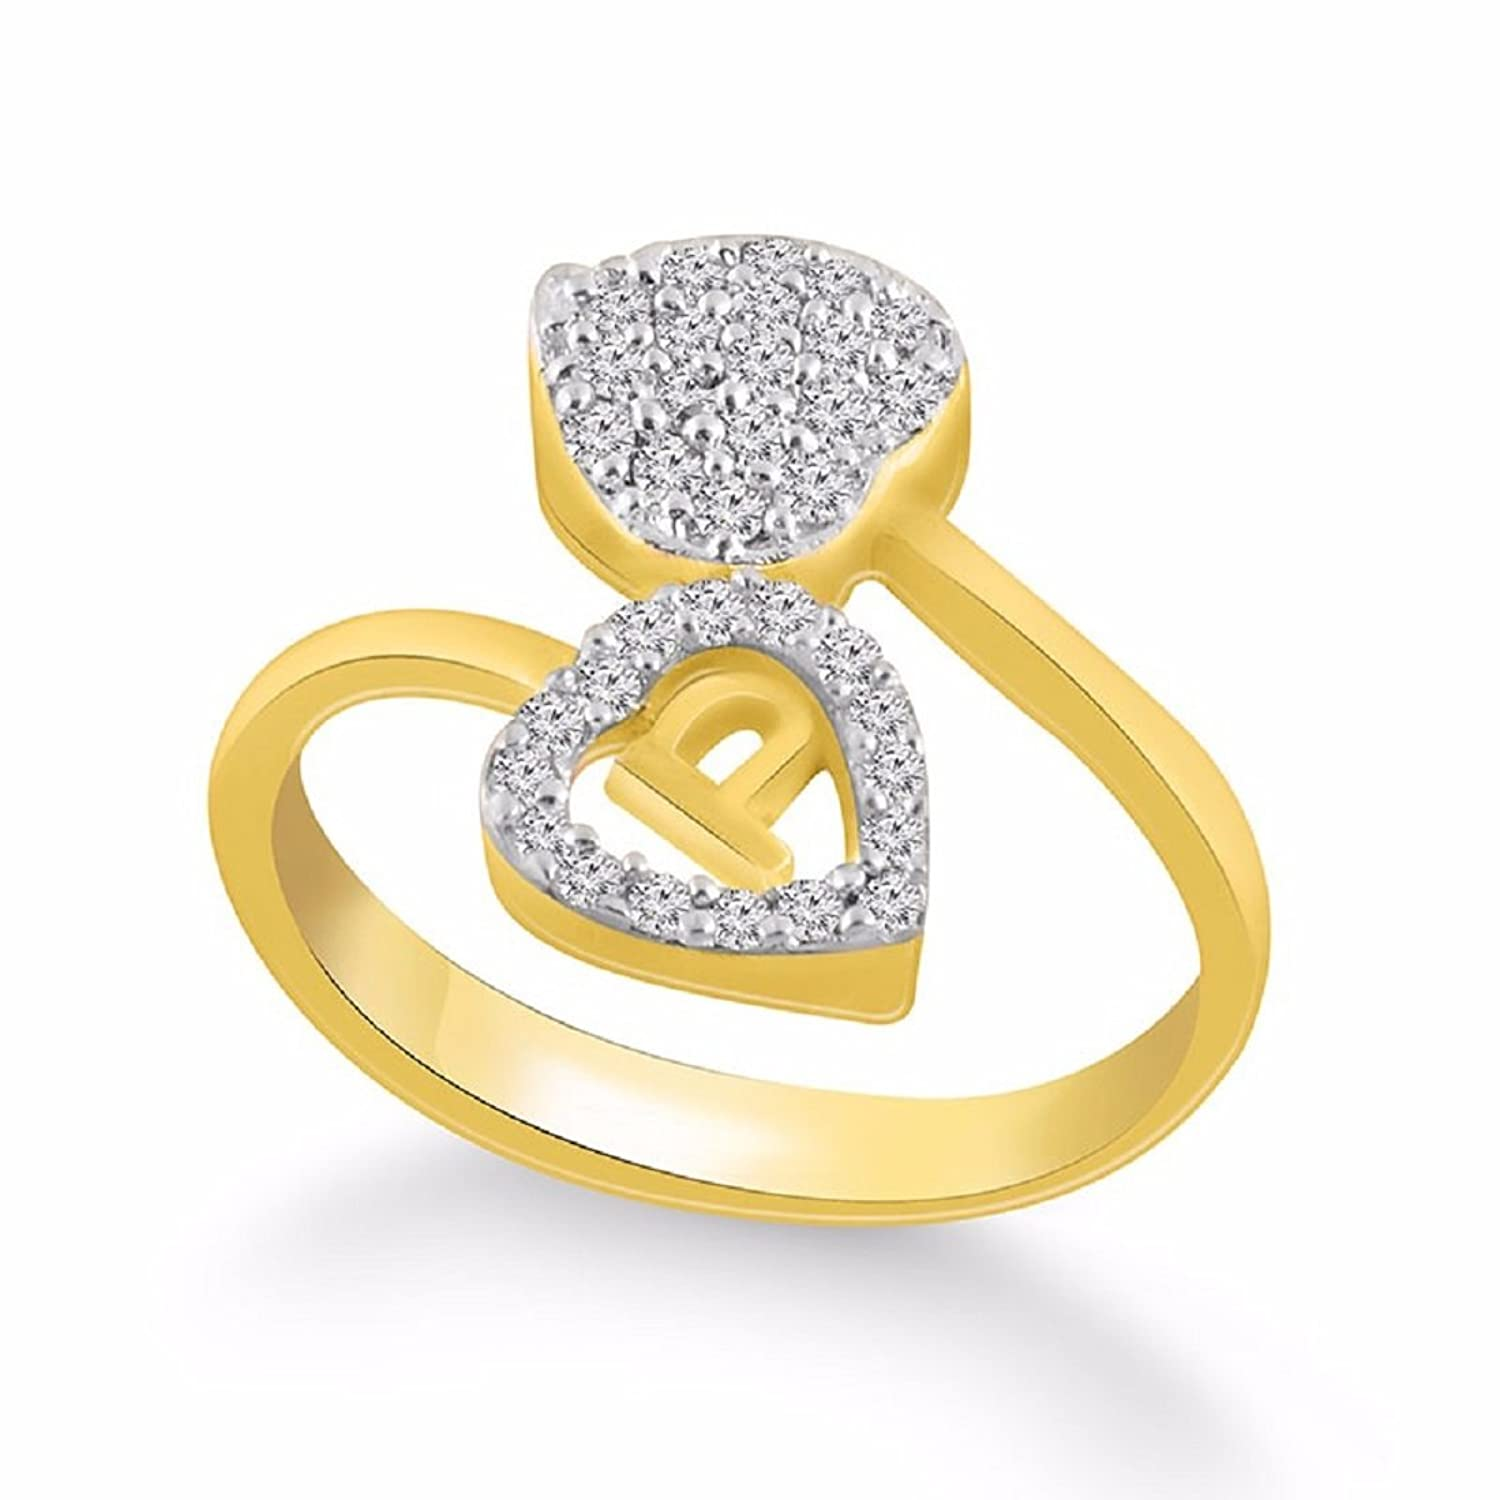 com designer real vine dp ladies for rings jewelry women ring amazon band jewellery yellow gold